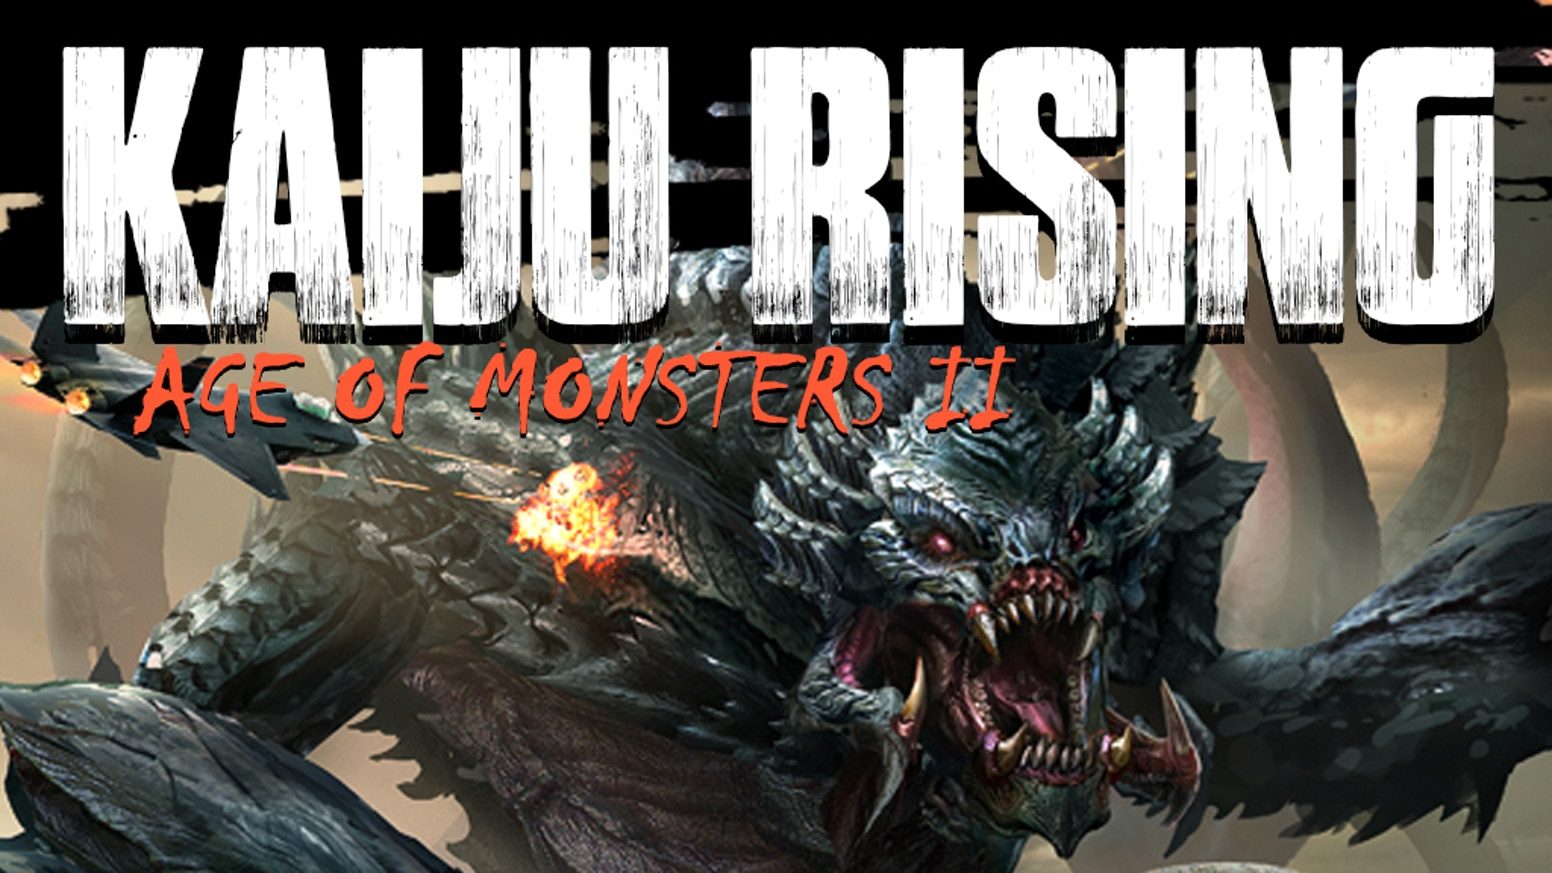 A giant-sized sequel to the hit anthology, Kaiju Rising: Age of Monsters! Featuring stompy and exciting stories about giant monsters!